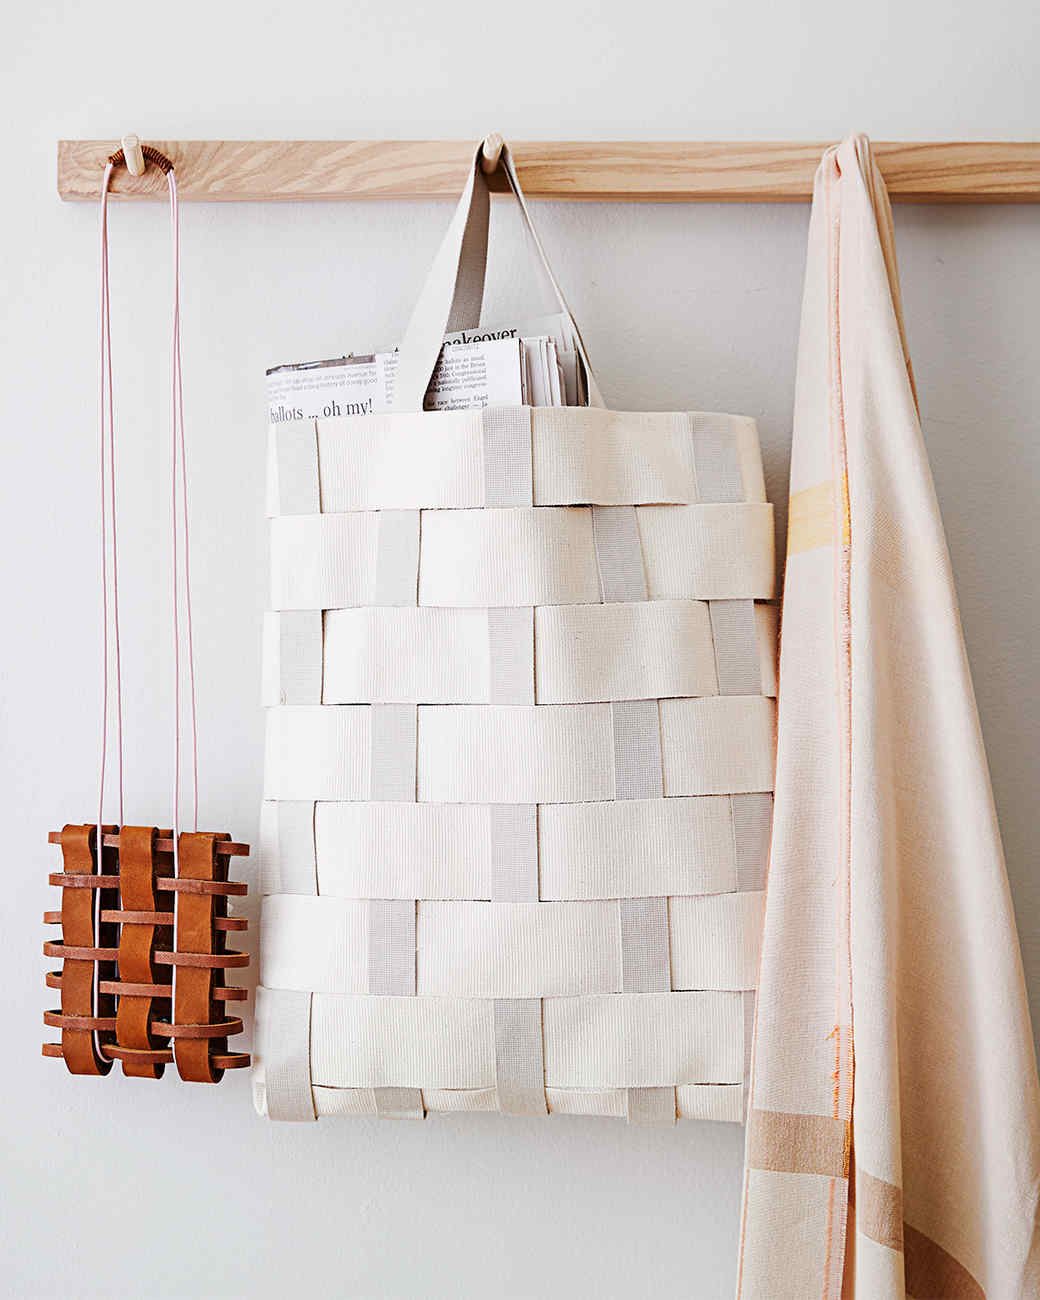 woven tote bags hanging on the wall